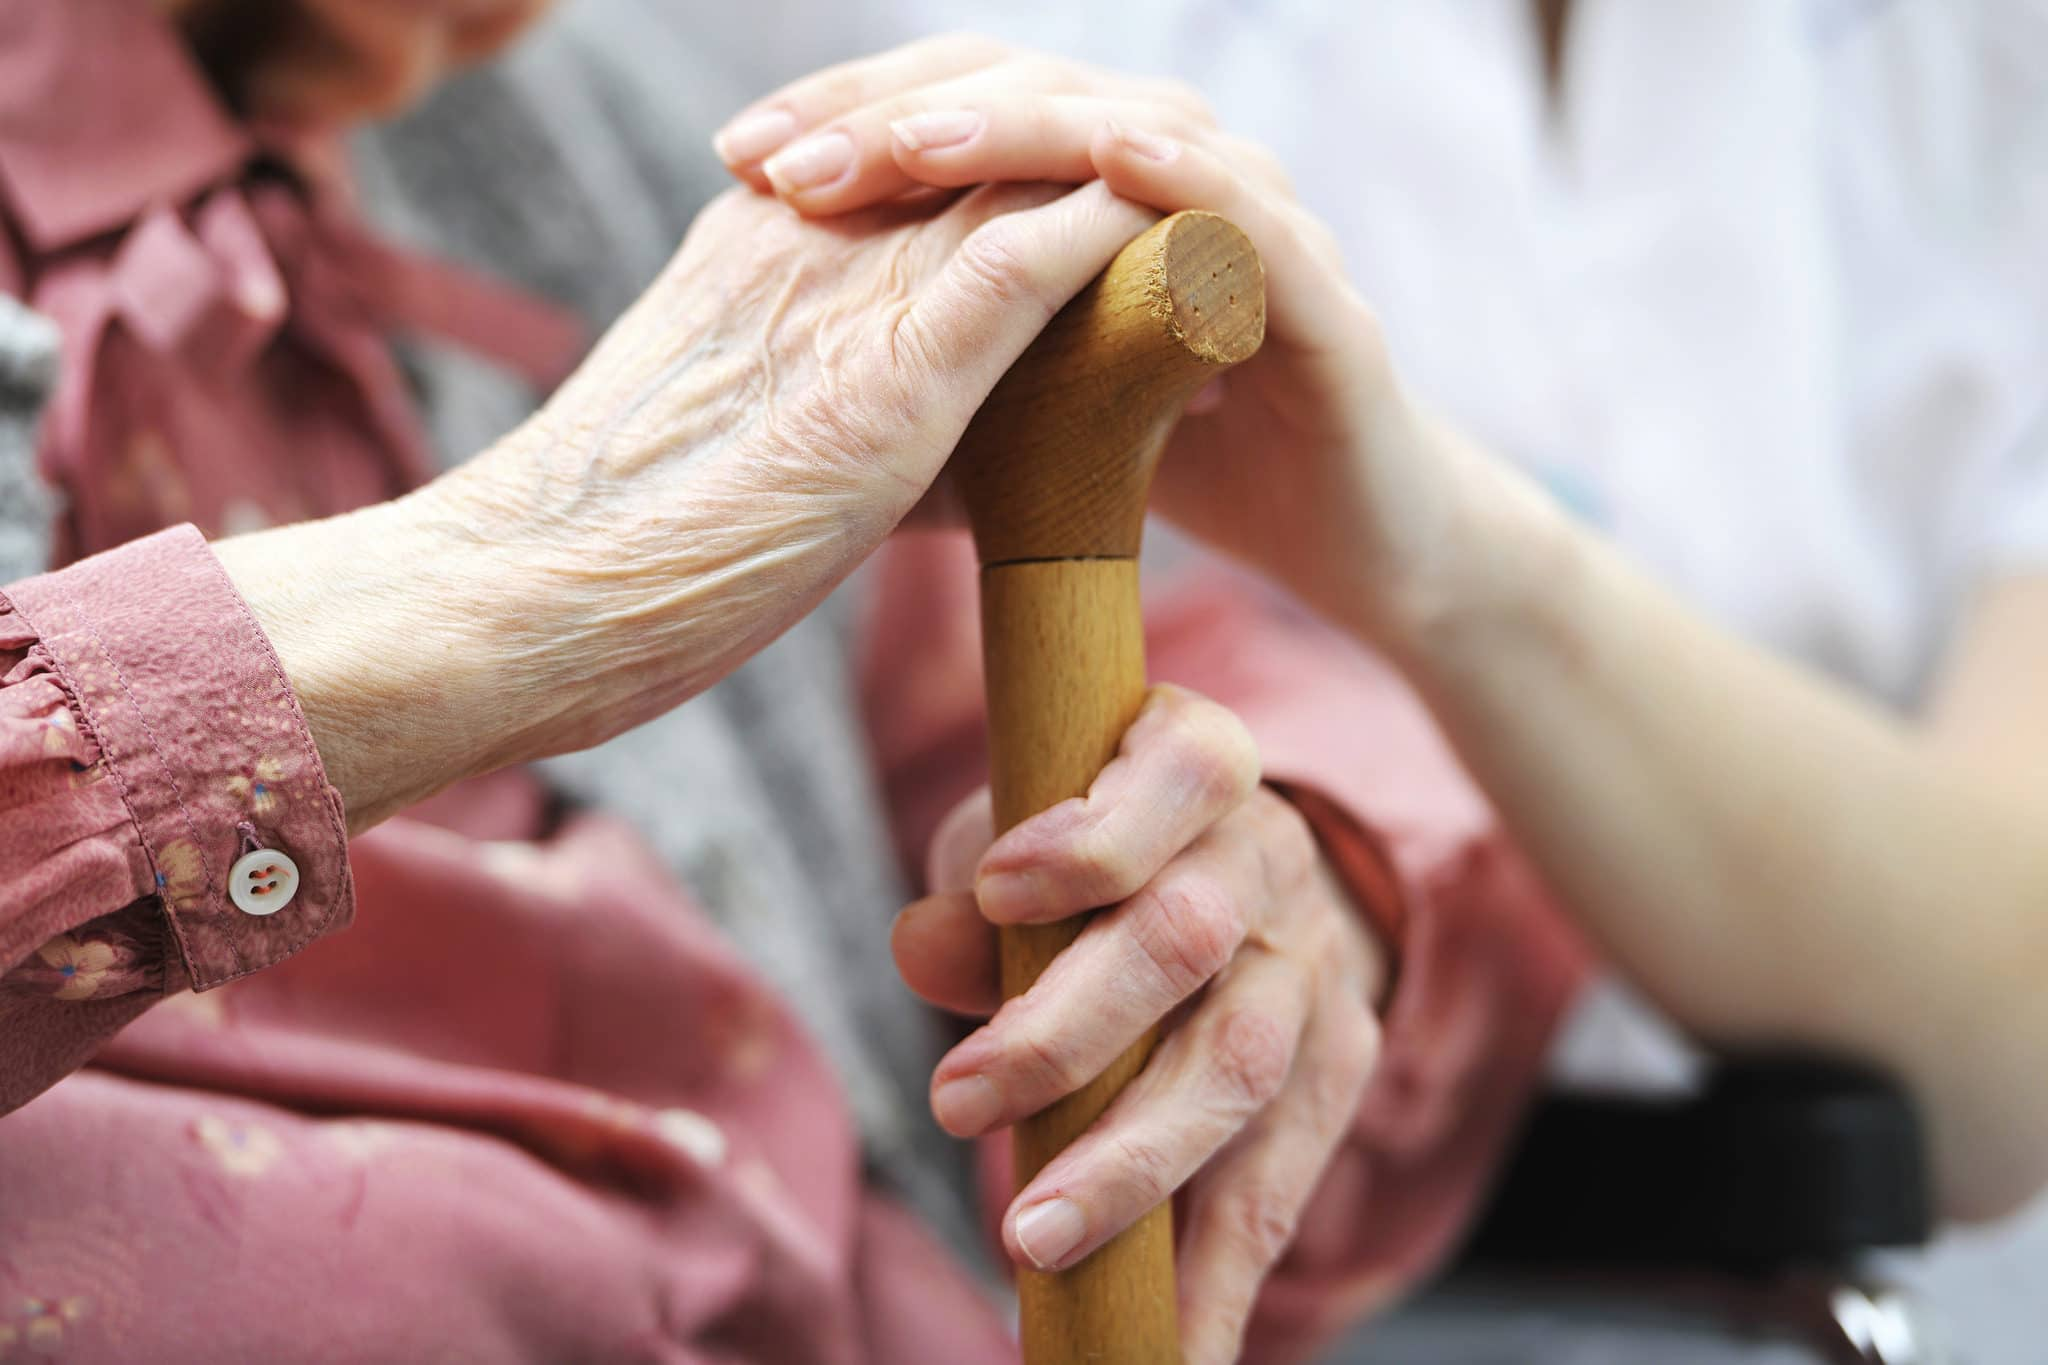 elder care - two hands holding a walking stick